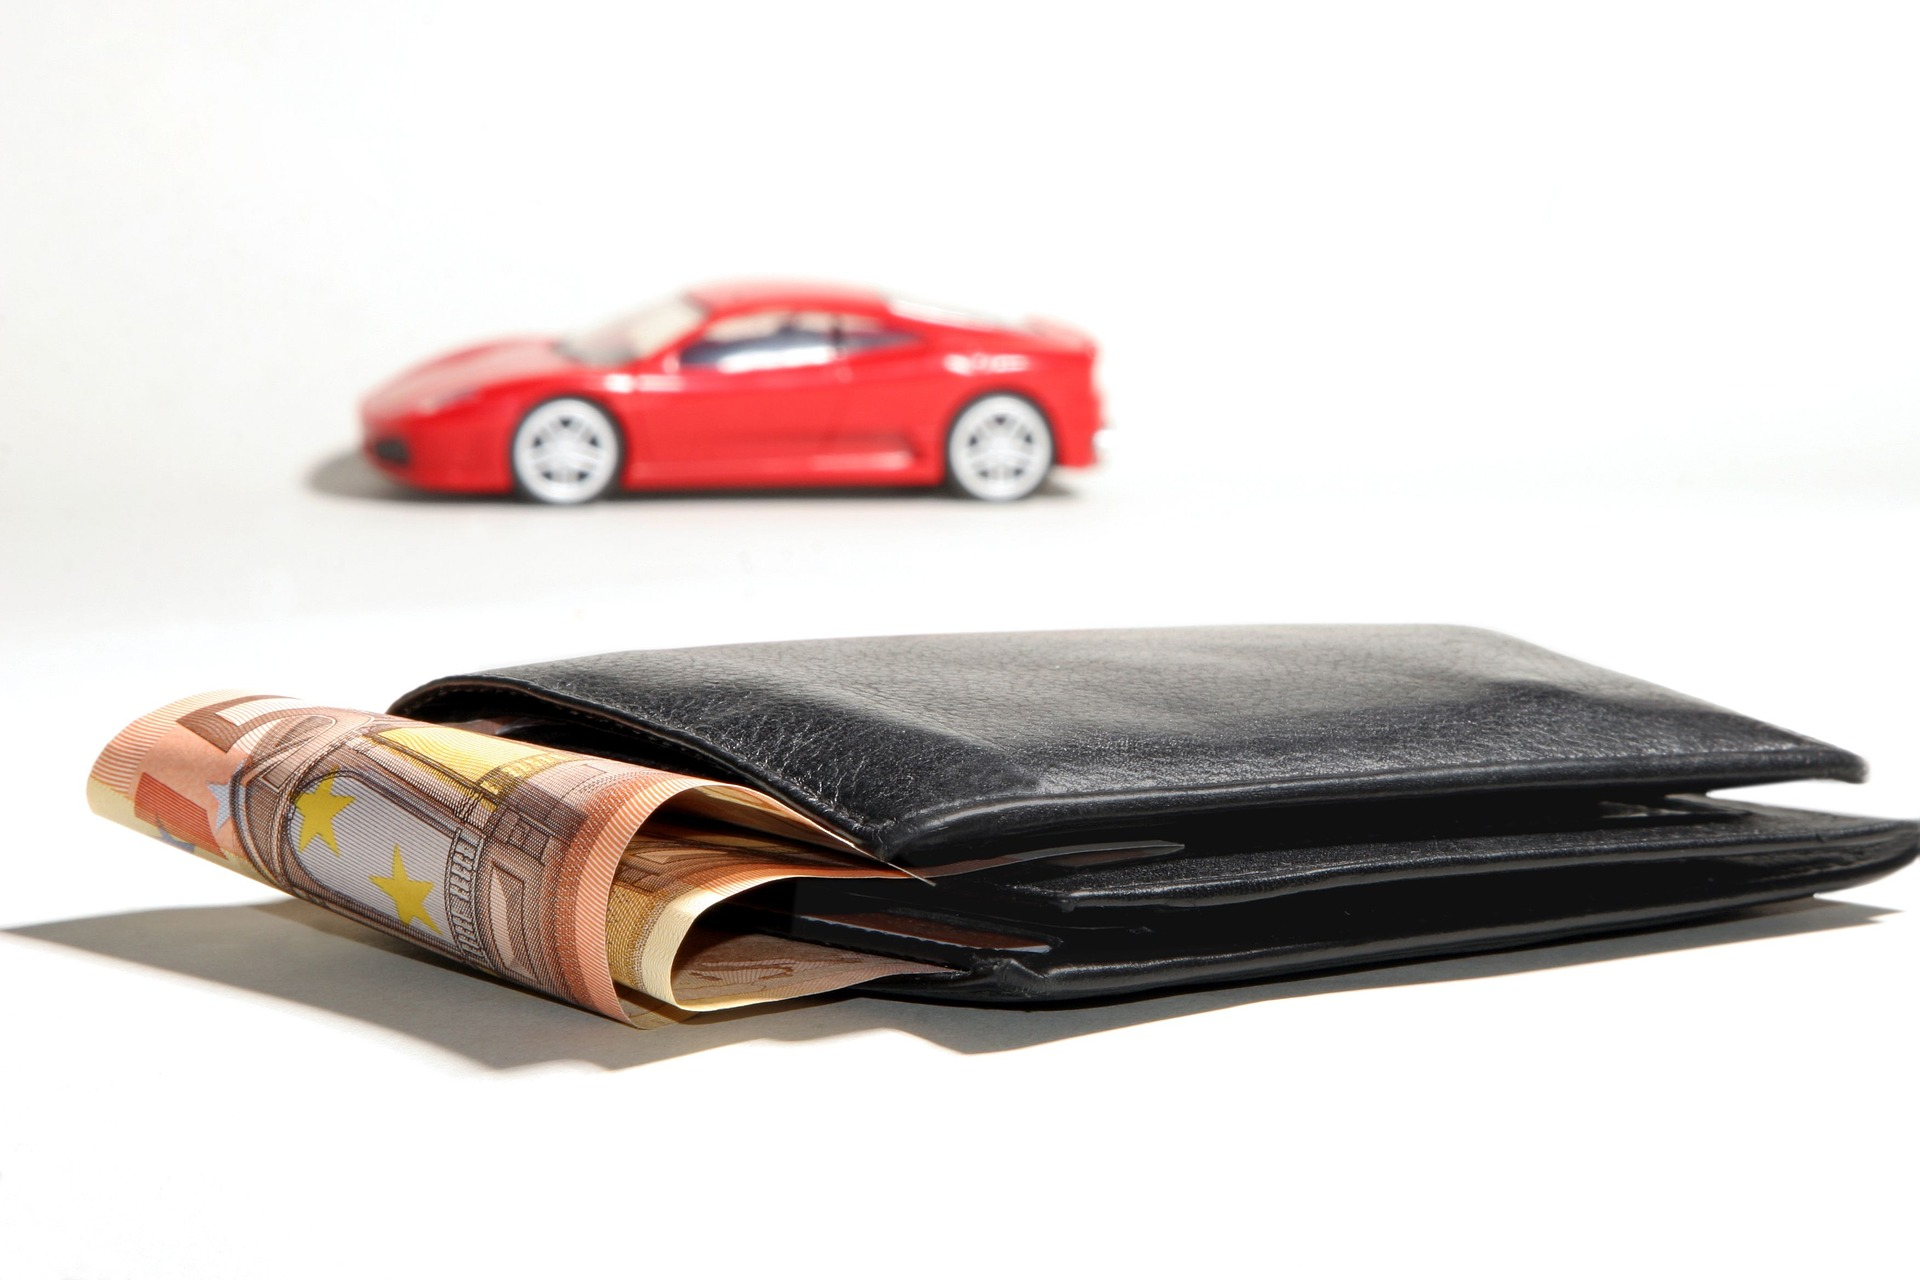 5 Tips for Getting the Best Deal on Your Auto Loan